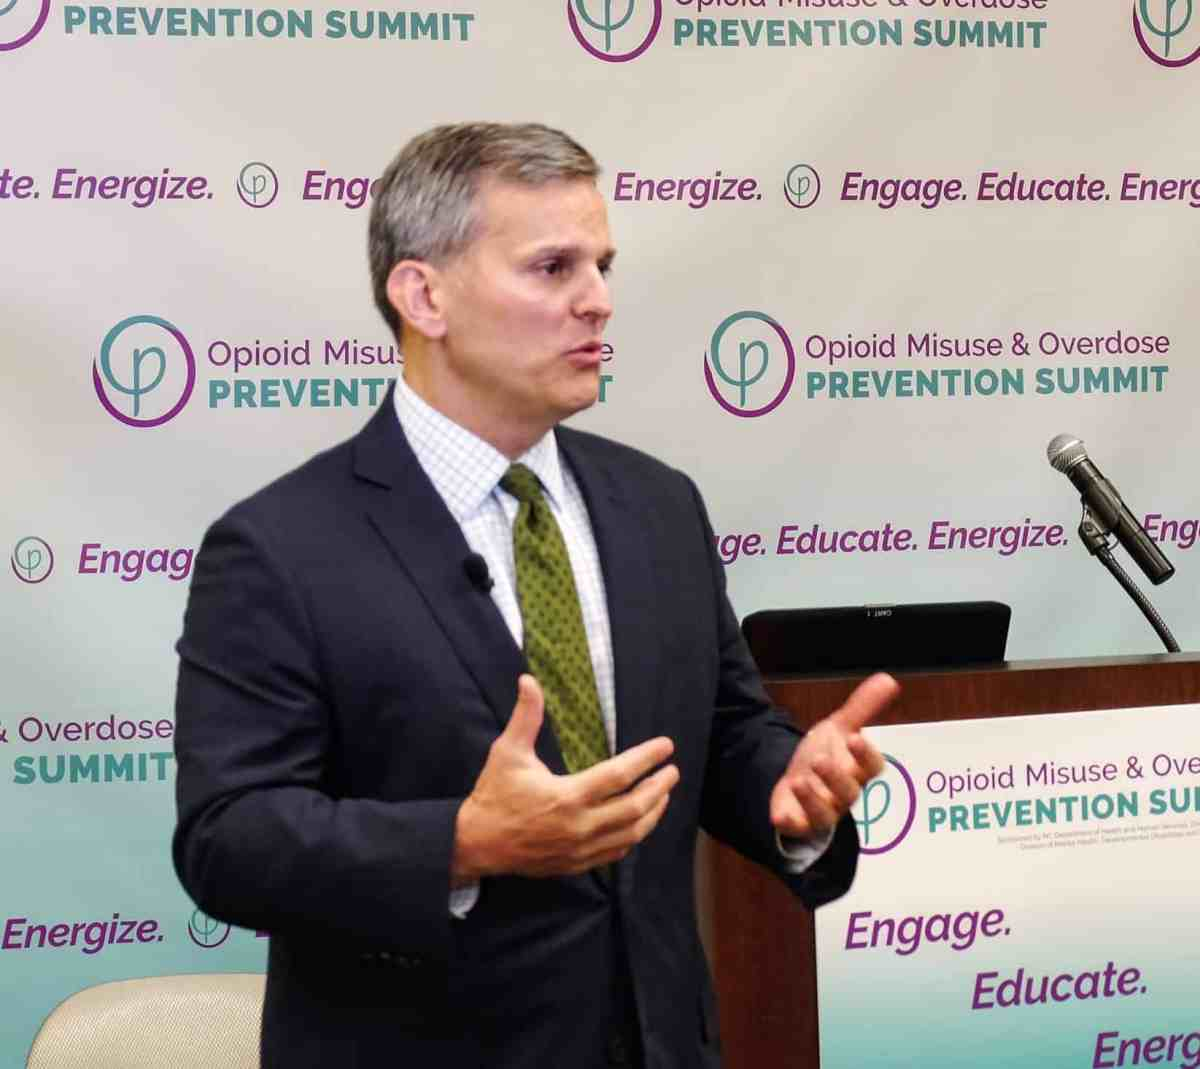 man stands by a podium, gesturing with his hands, speaking to an unseen audience at the opioid summit